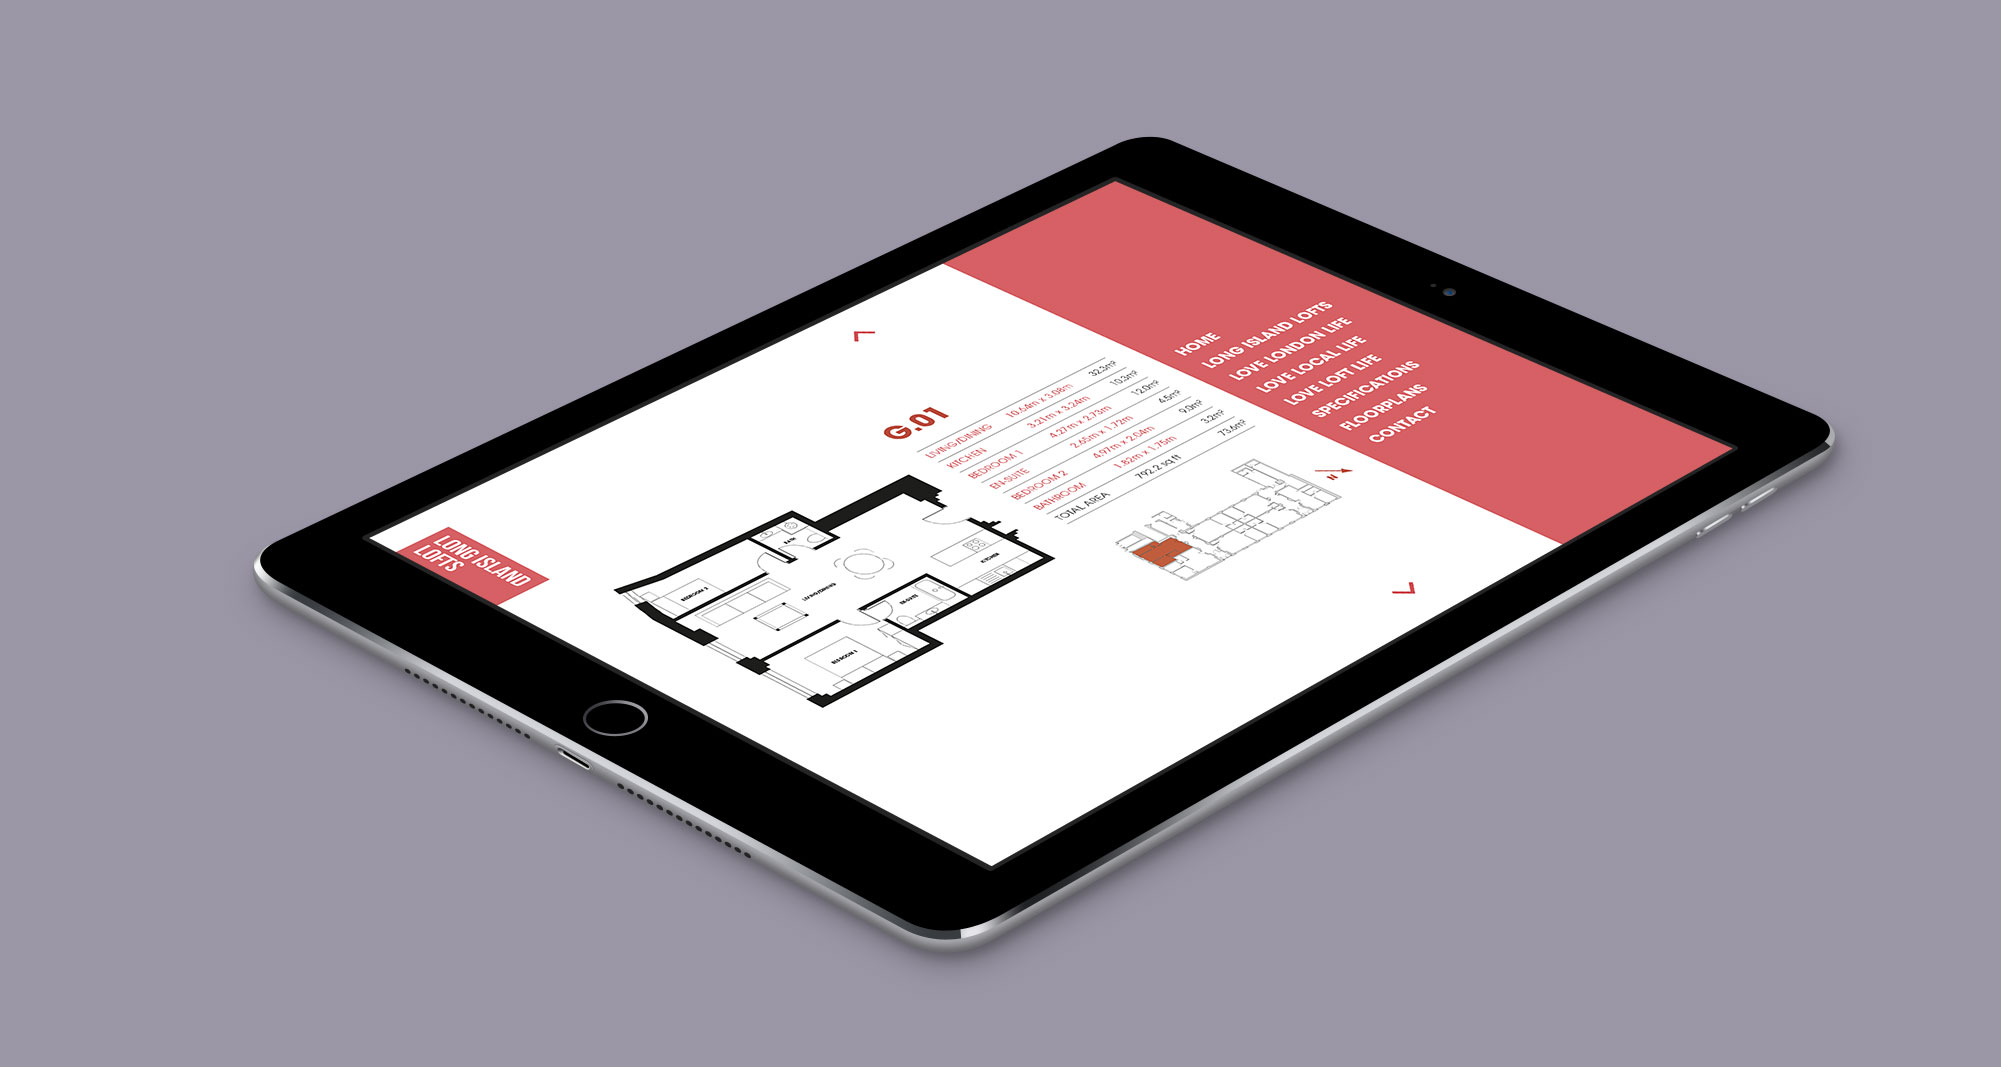 Luxury London property responsive website design and development on iPad